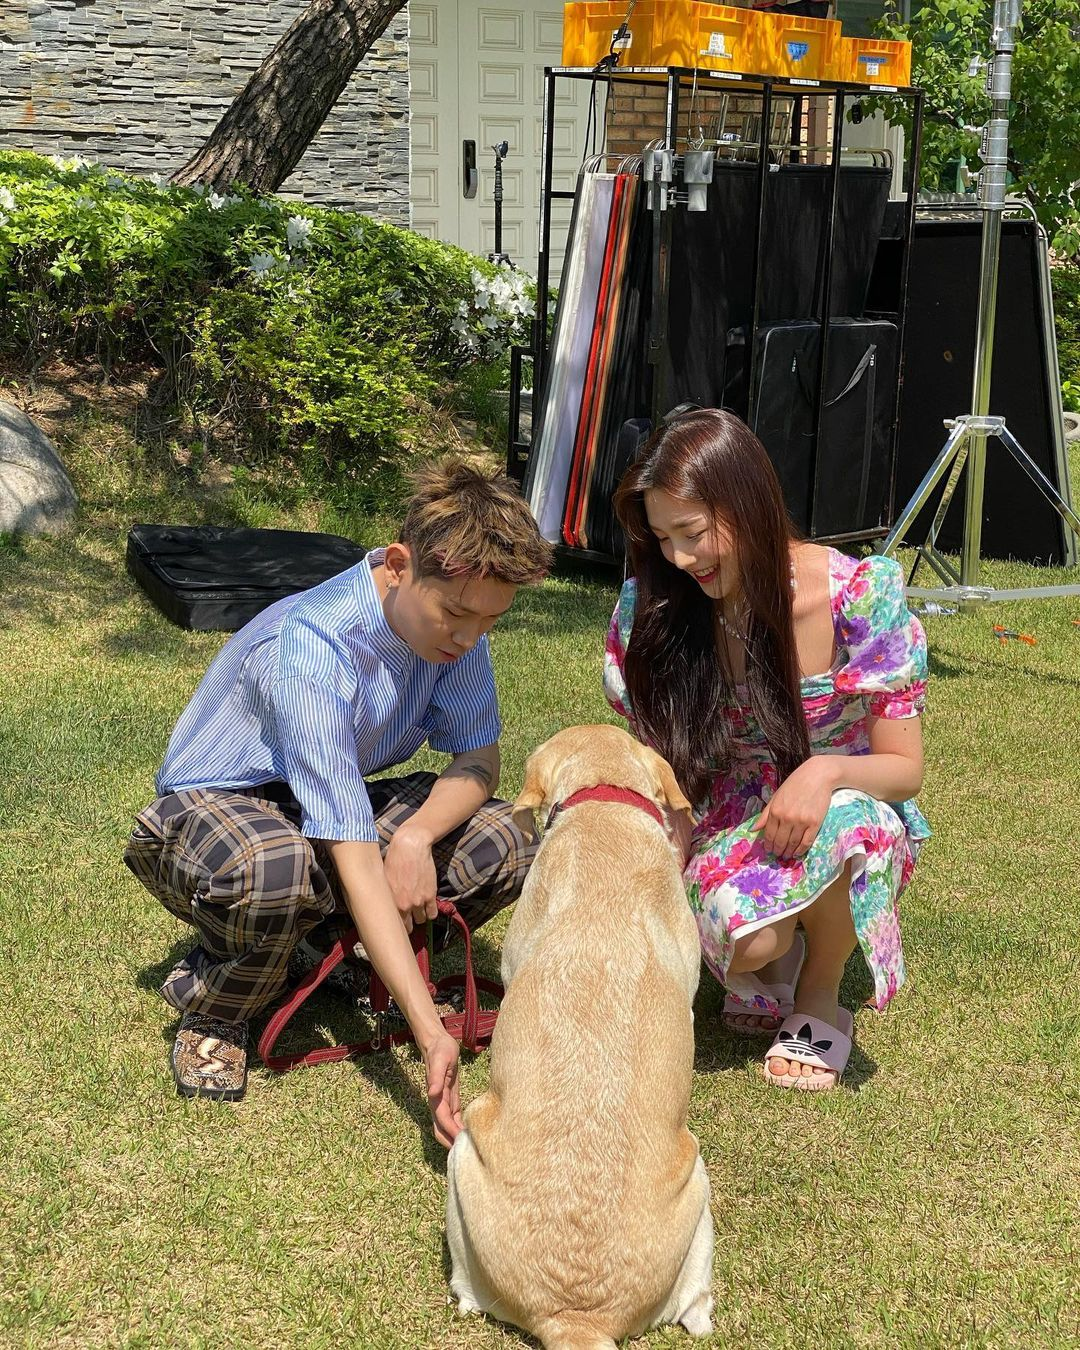 Joy and Crush confirmed to be dating - with a dog